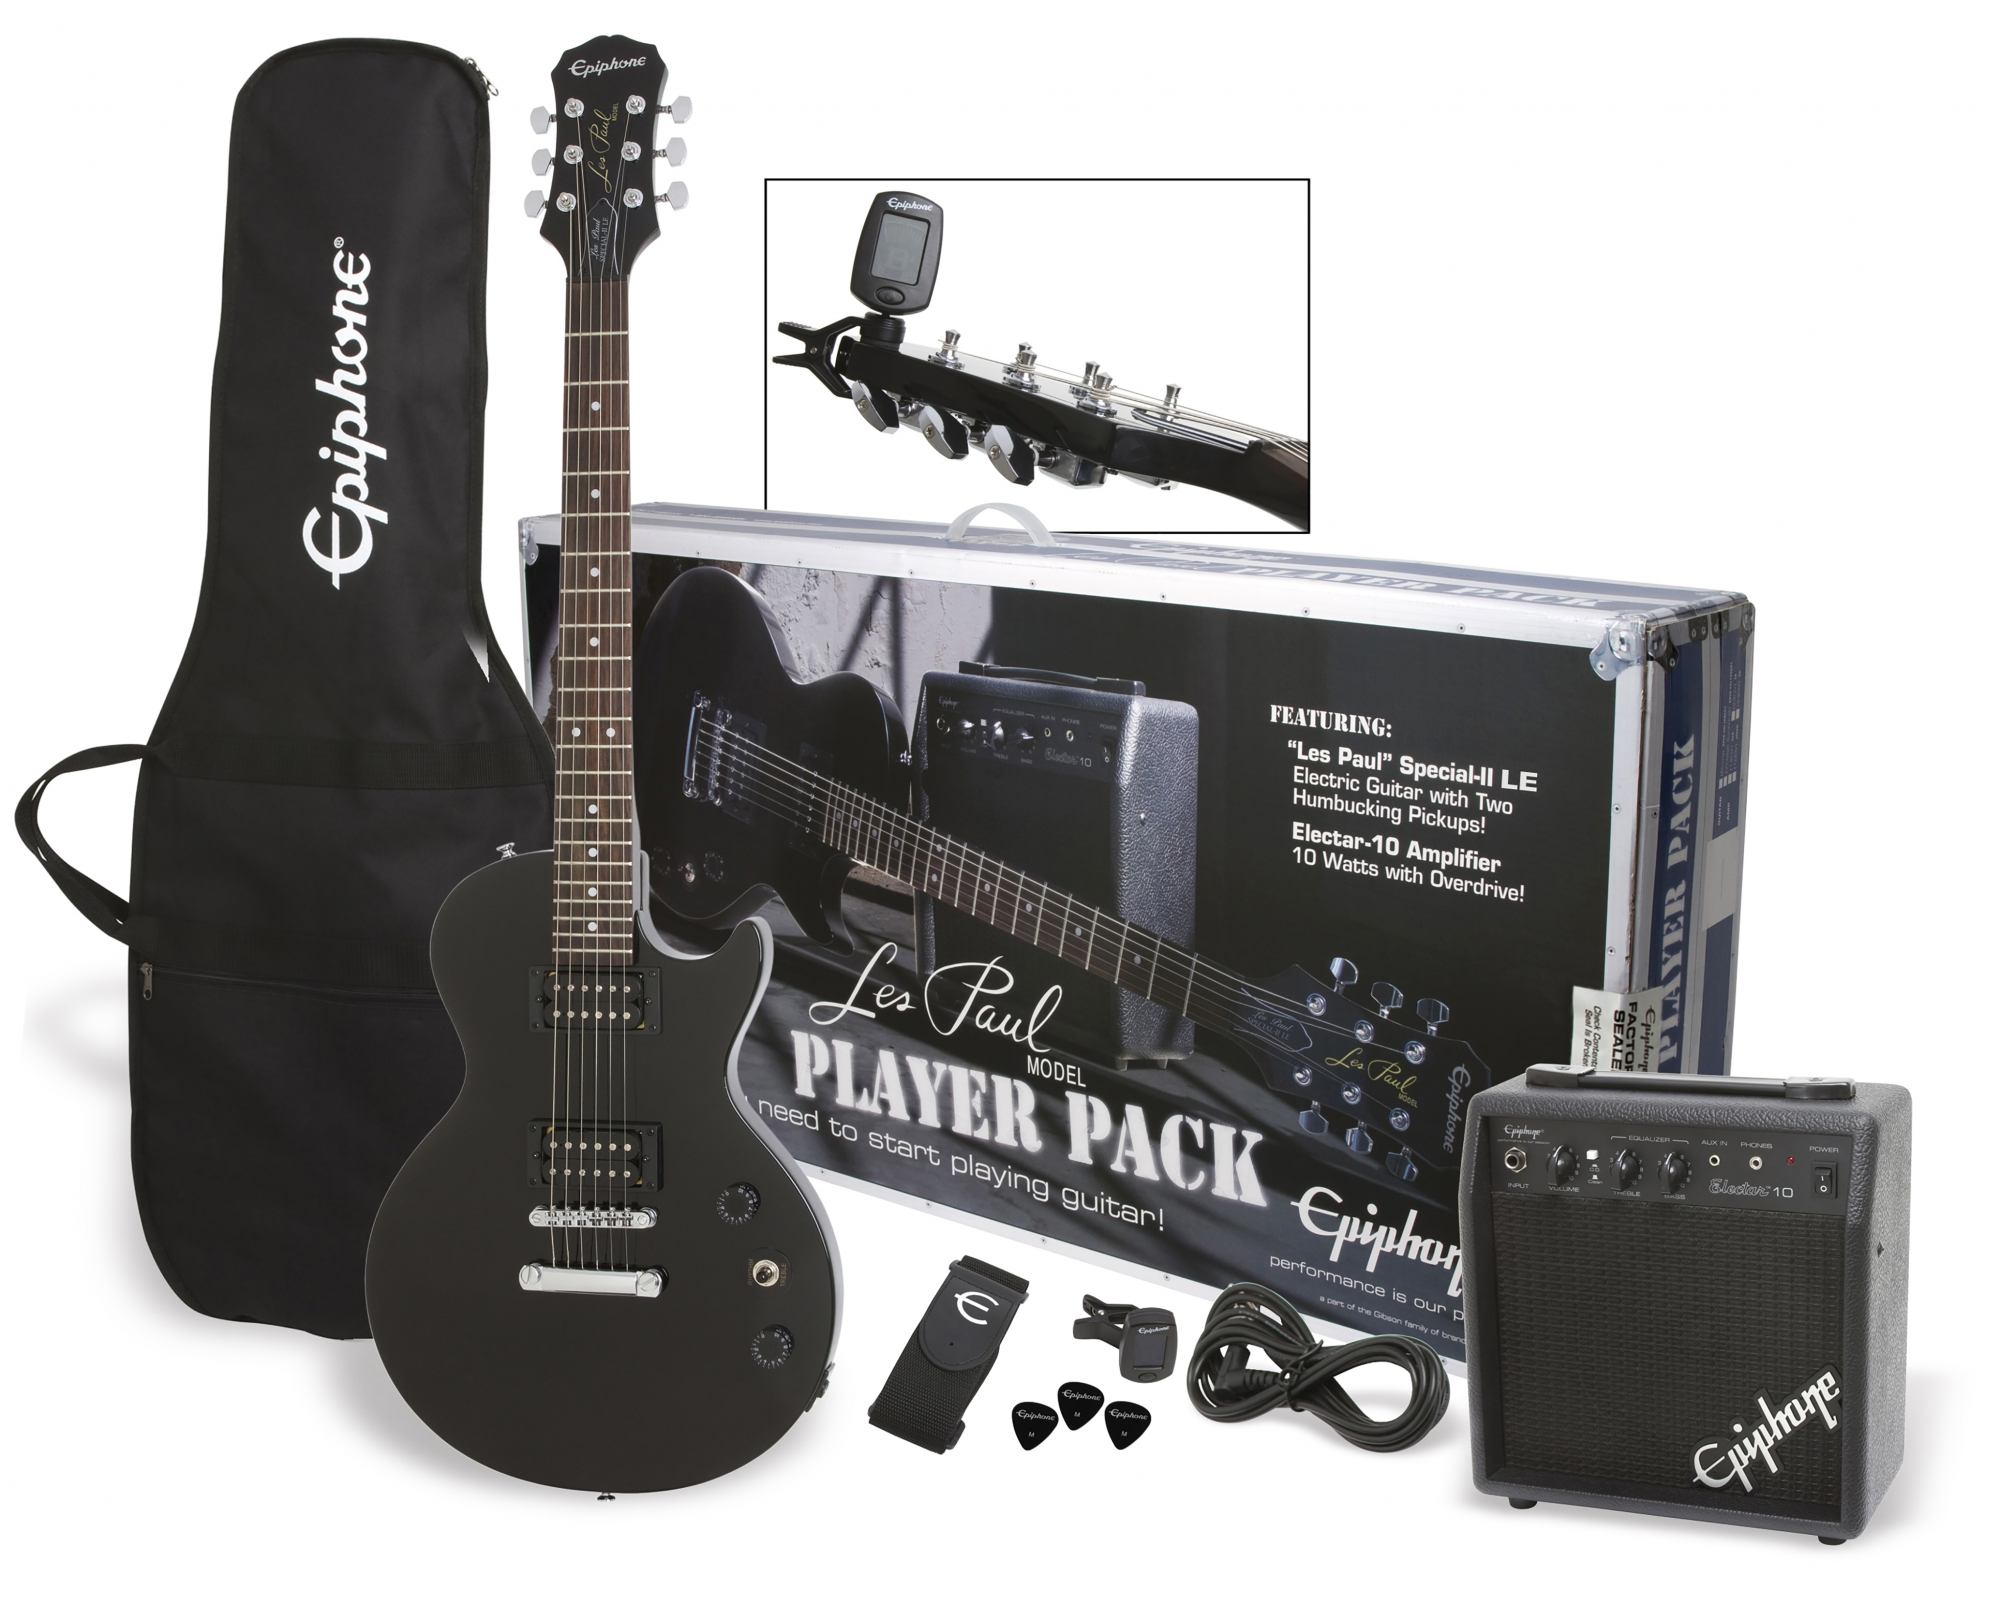 Epiphone Les Paul, Ebony CF, Player Pack